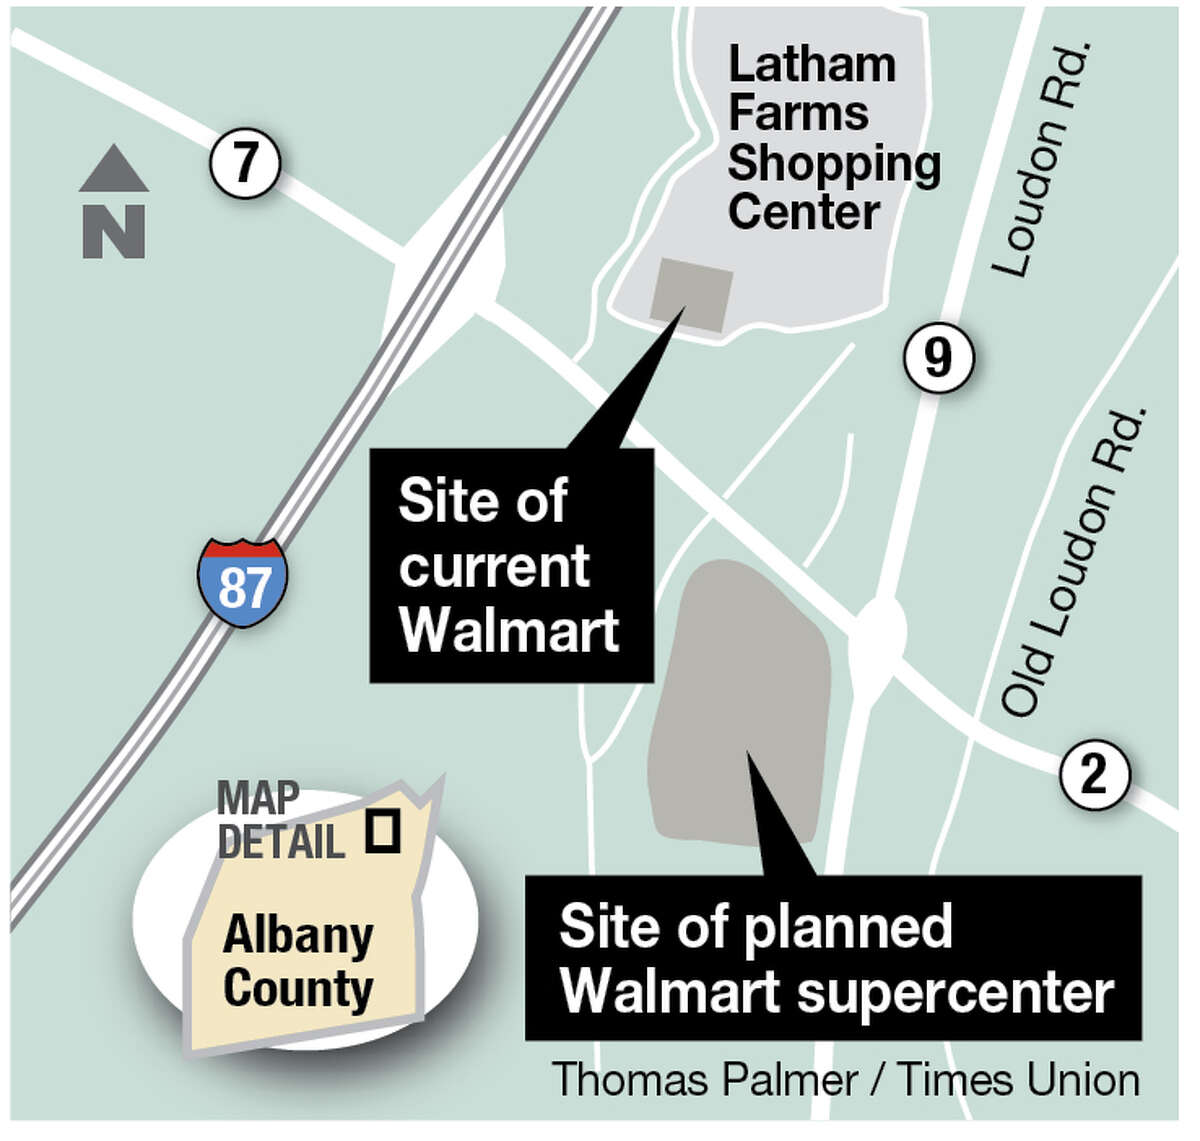 Site of planned Walmart supercenter.